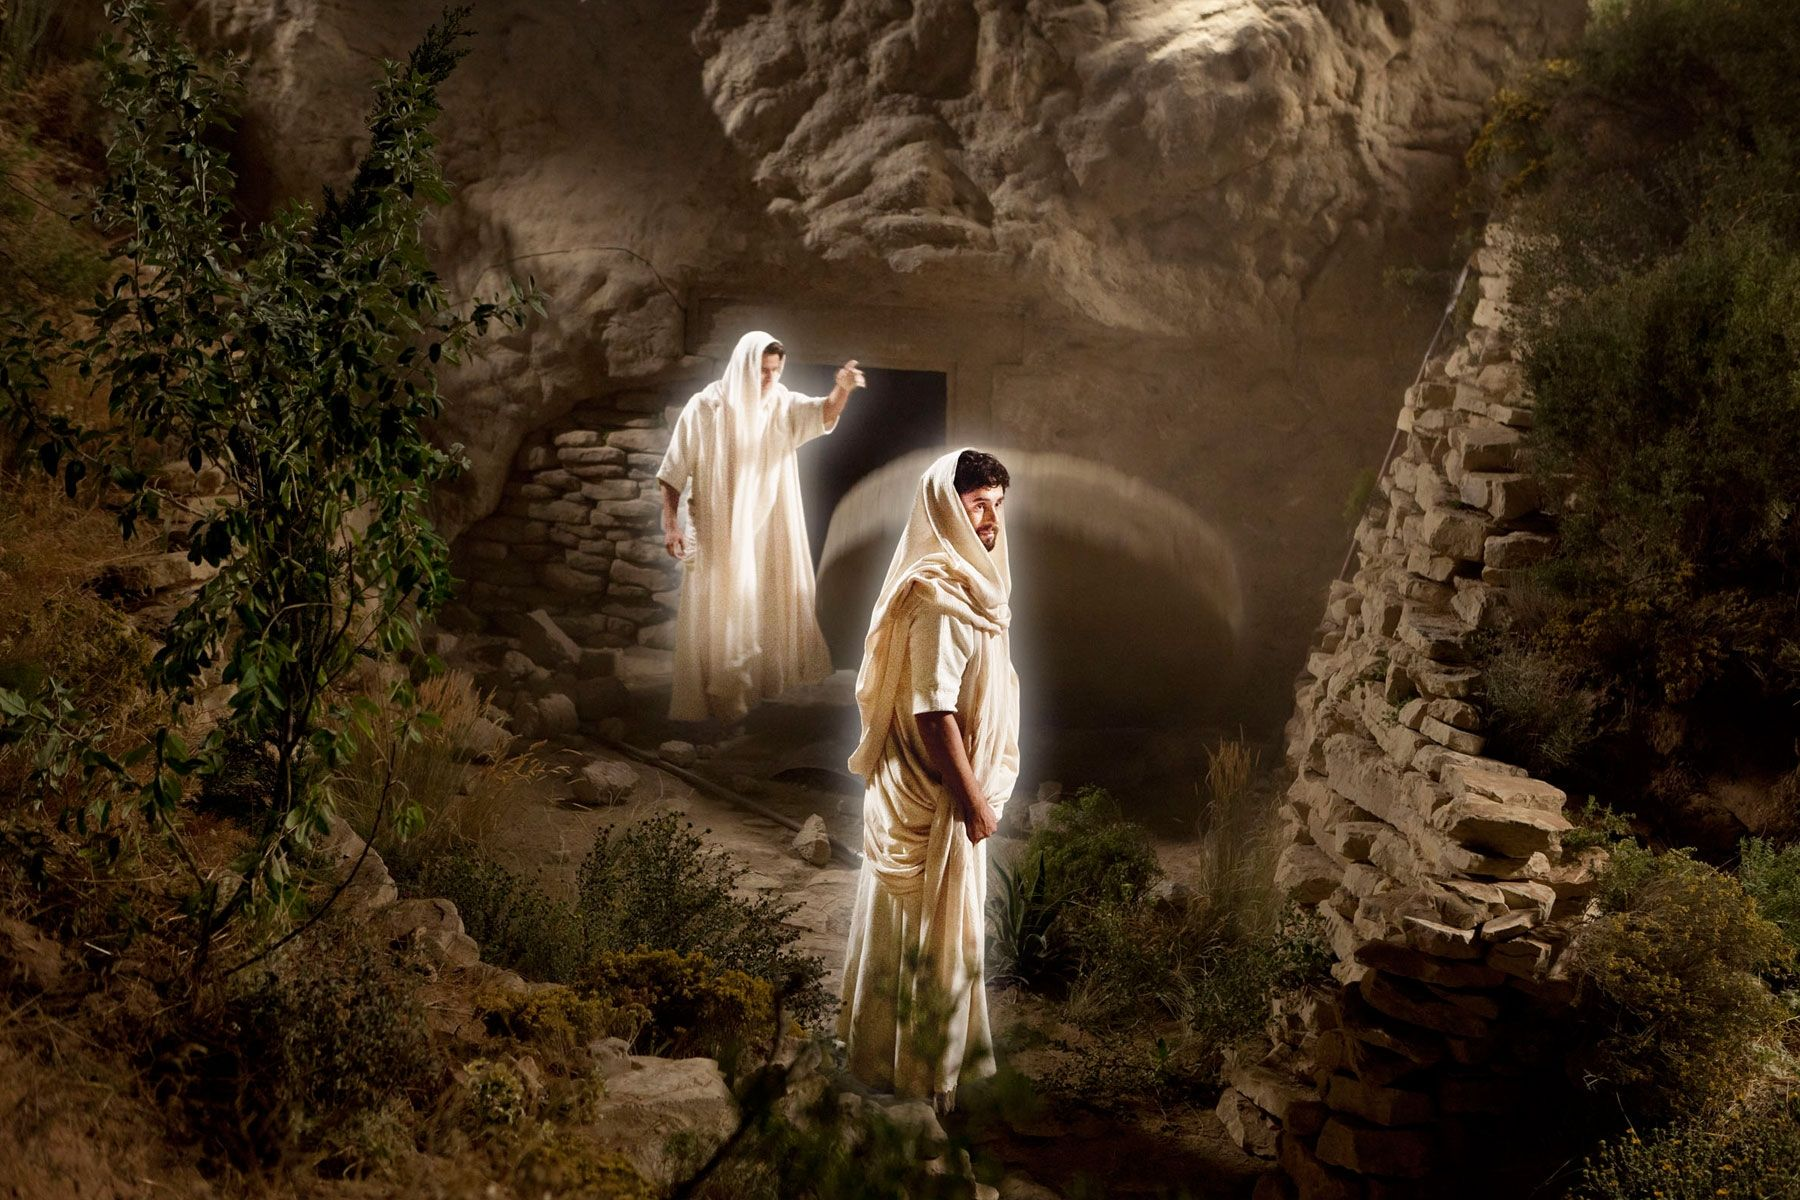 Angels come down and open the tomb where Christ's body lays.